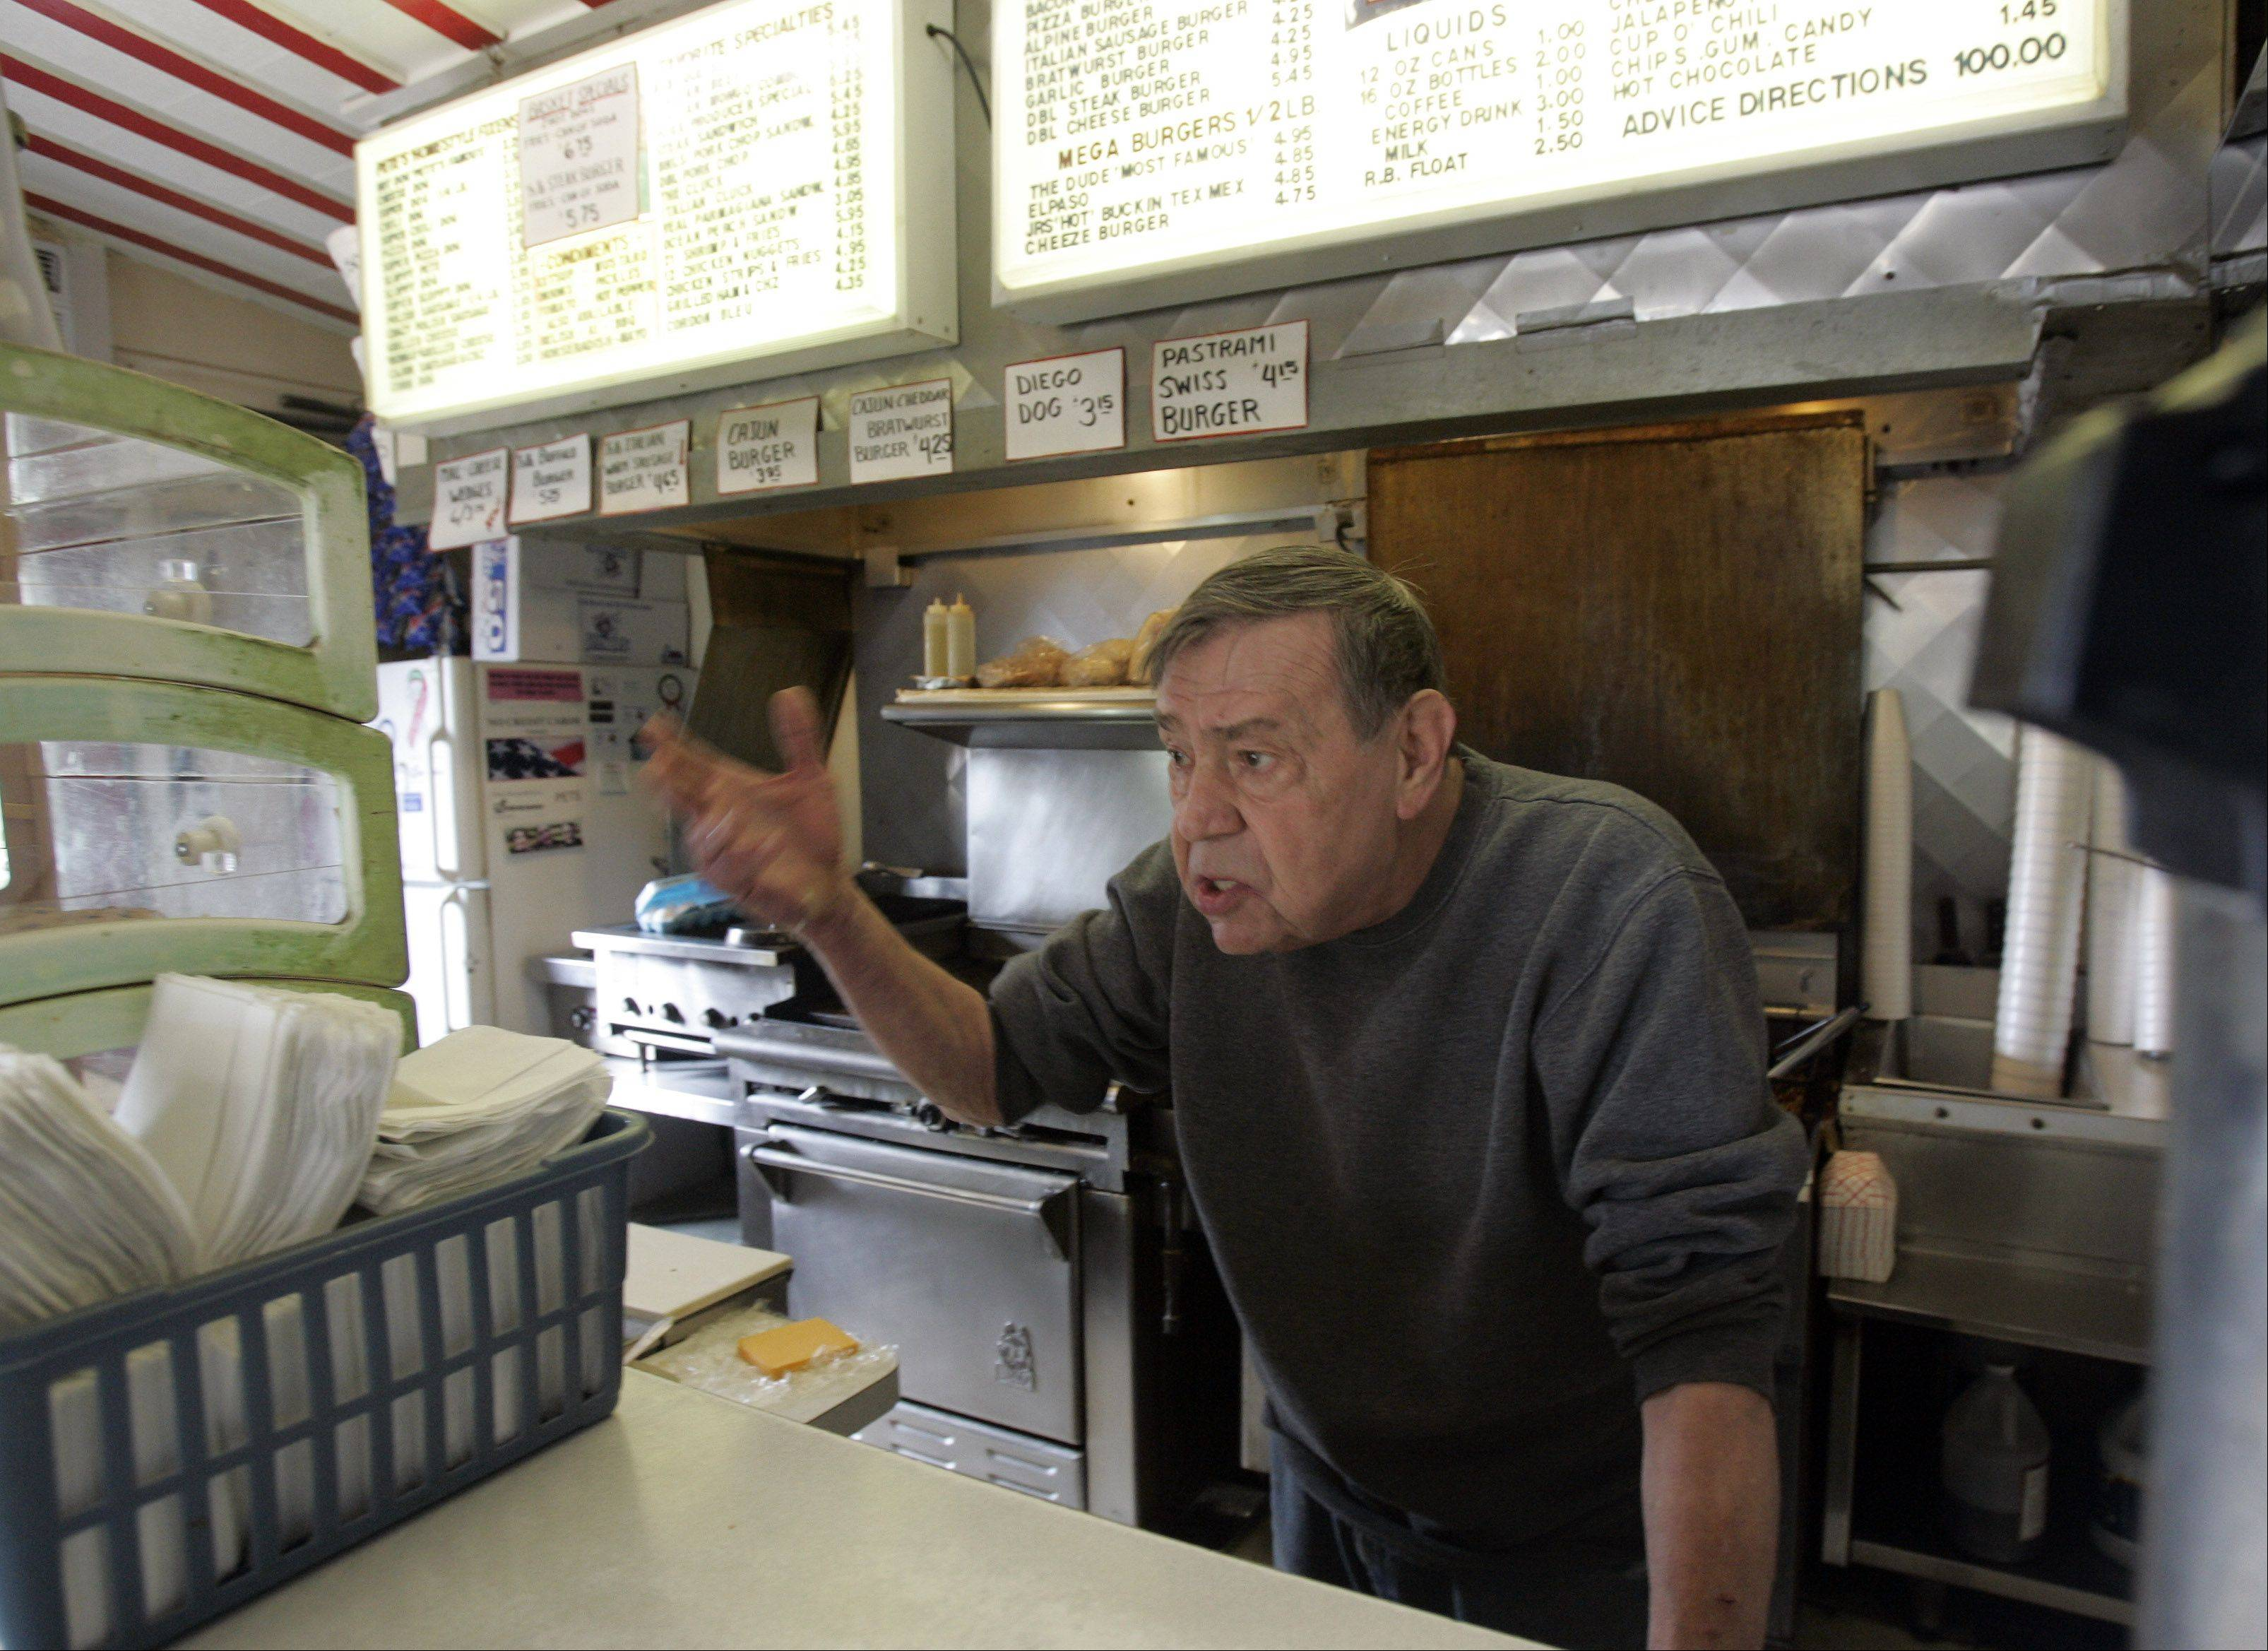 Hot dog restaurant says roadwork will hurt his business